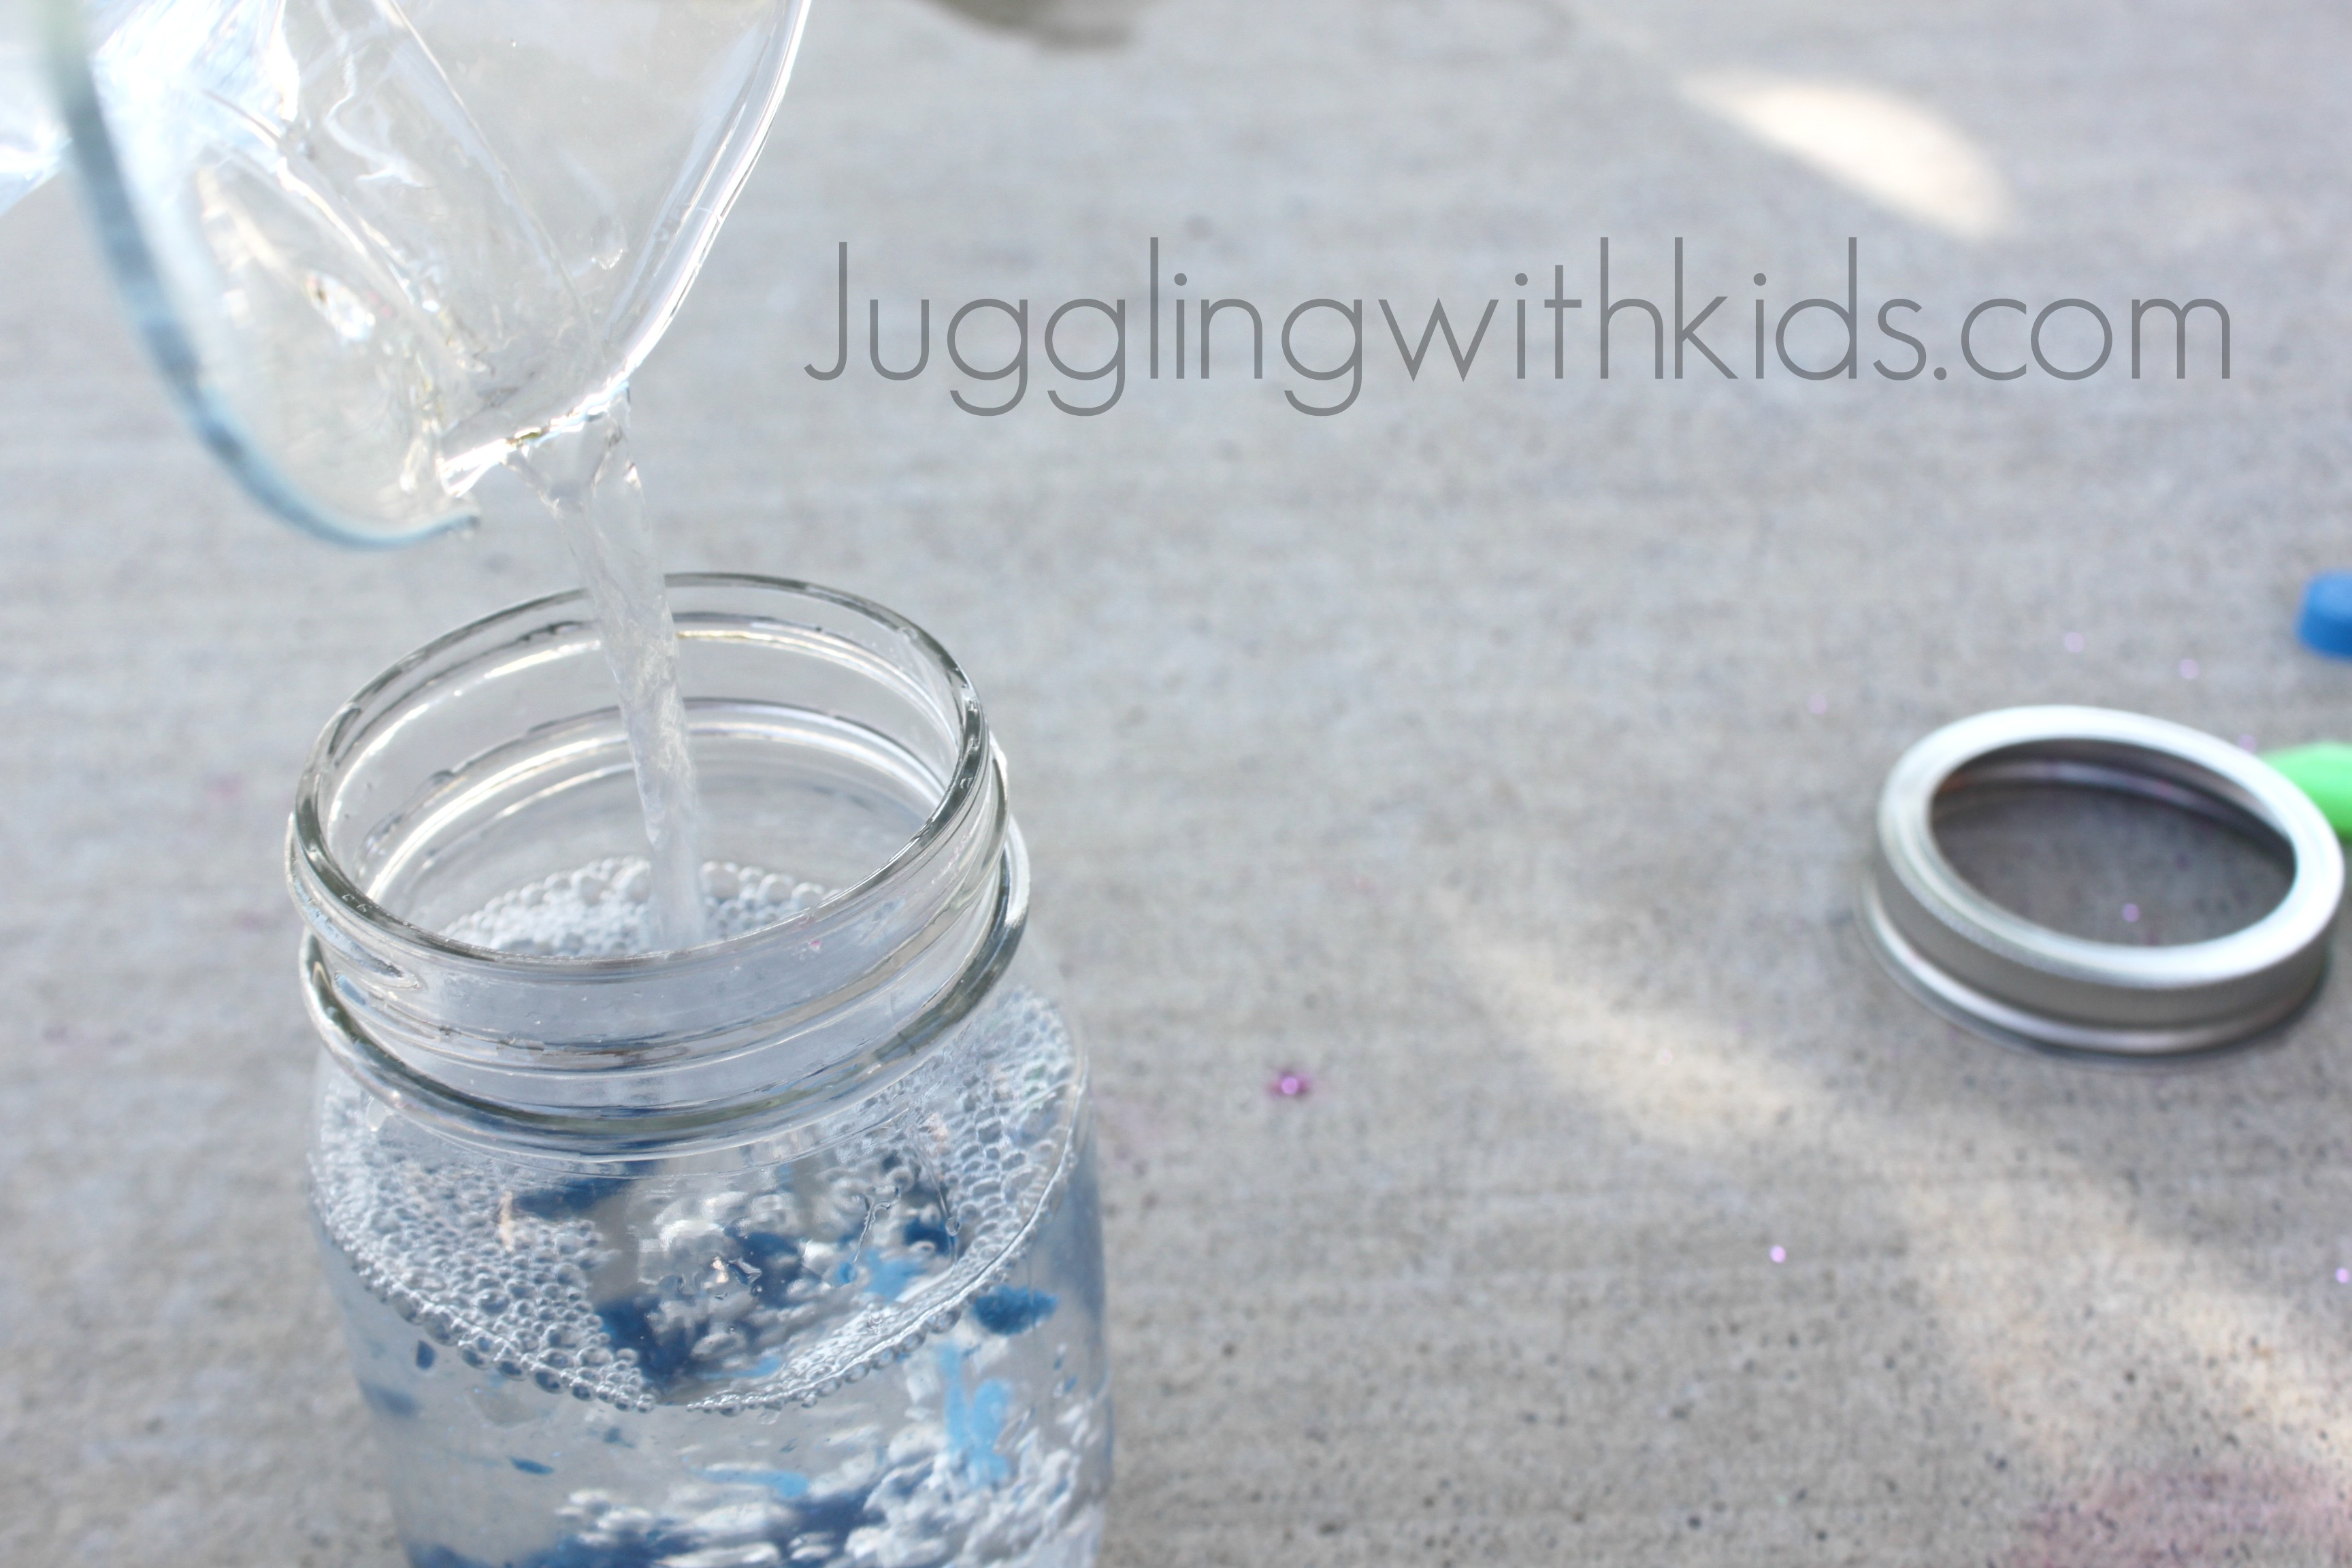 Mind Jar Juggling With Kids